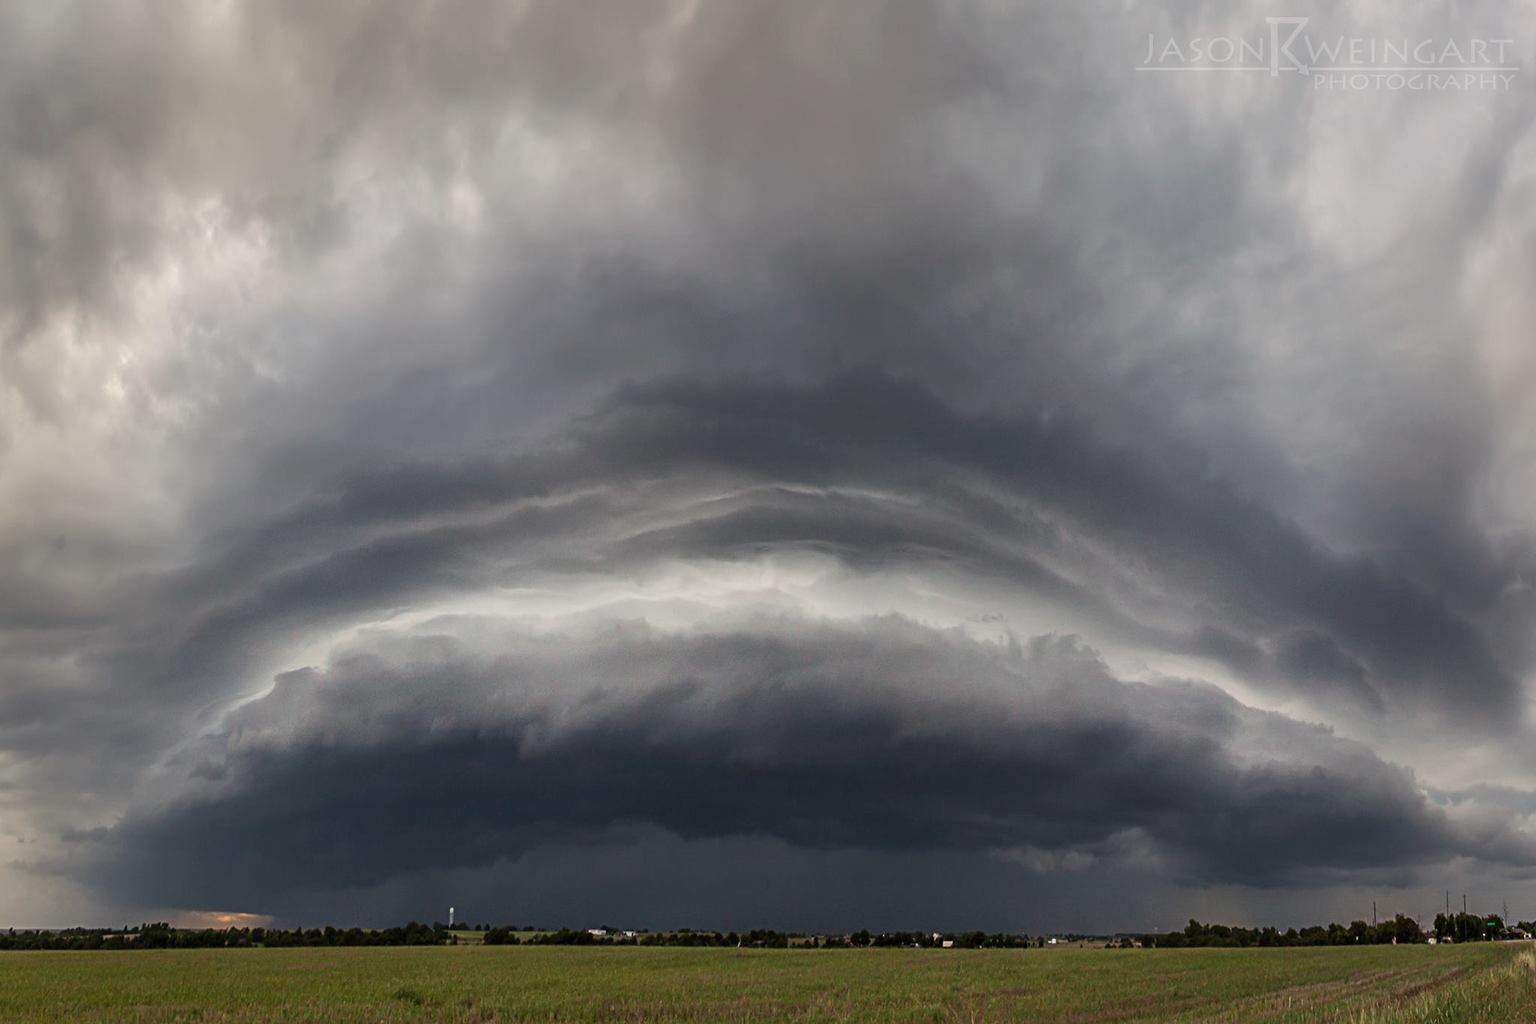 Five image panorama of a shelf cloud near Salado, Tx. 06.18.15 f/10.0 1/160th second ISO 200